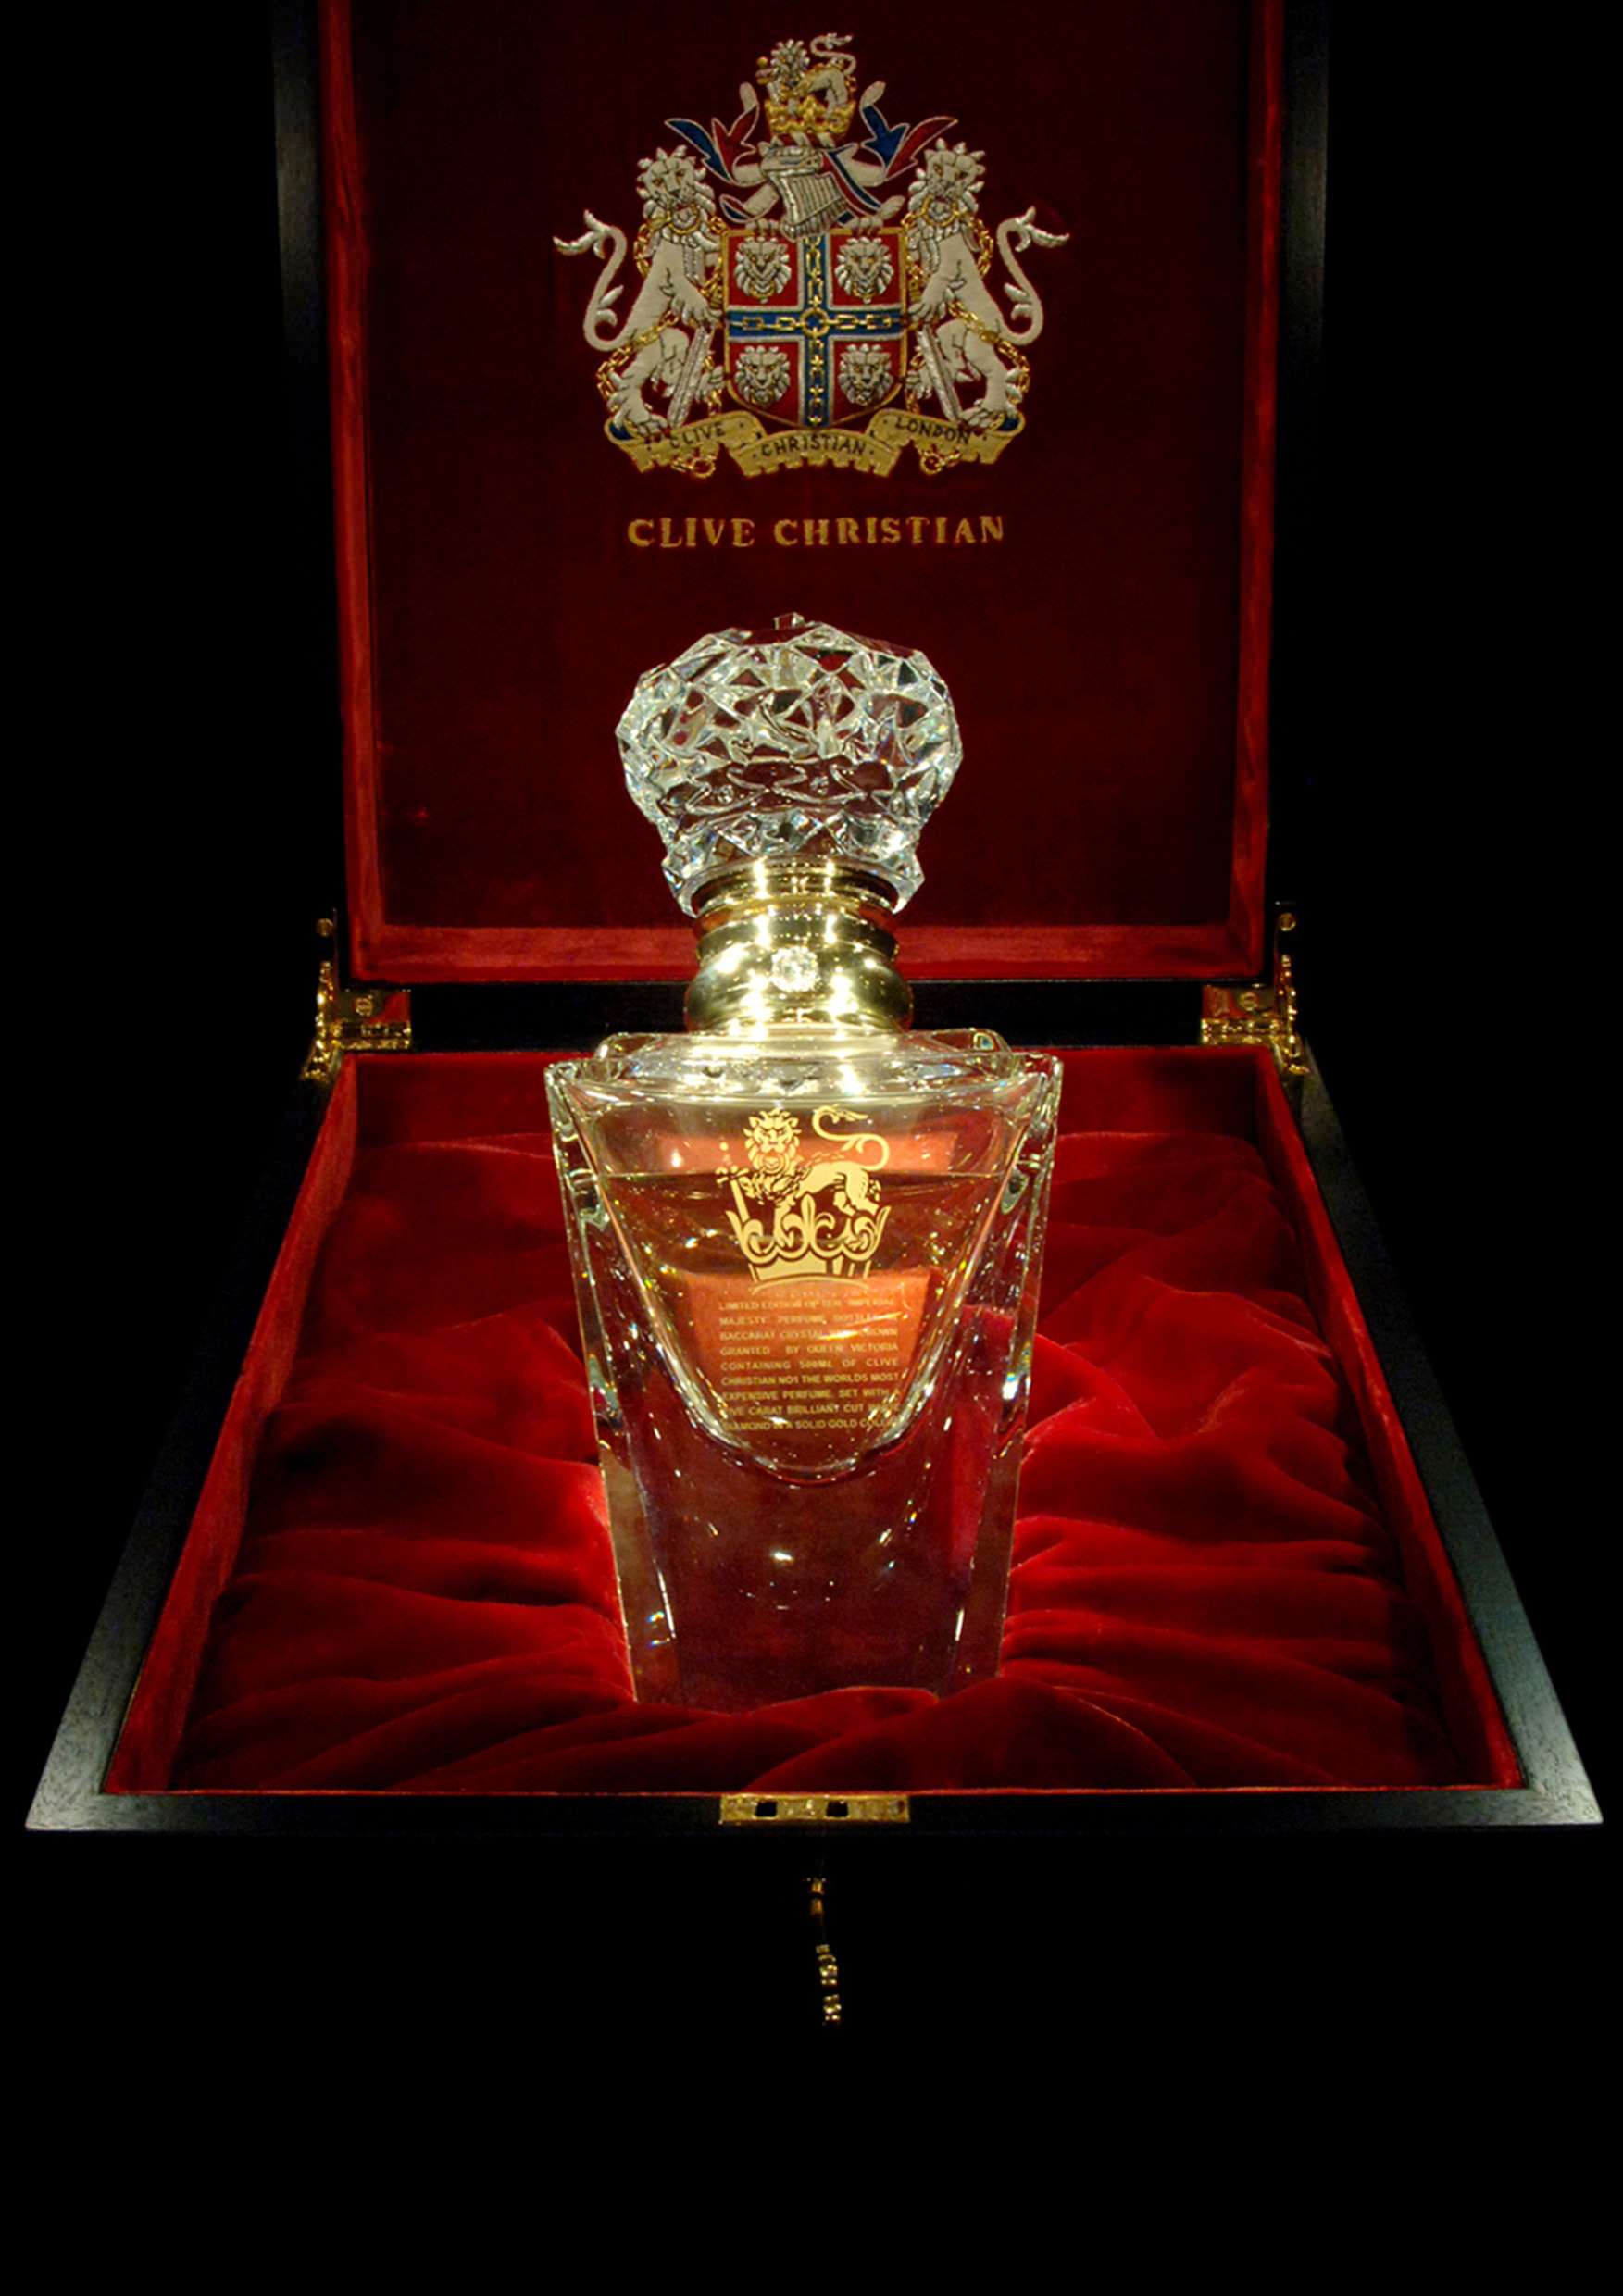 clive-christian-no-1-perfume-imperial-majesty